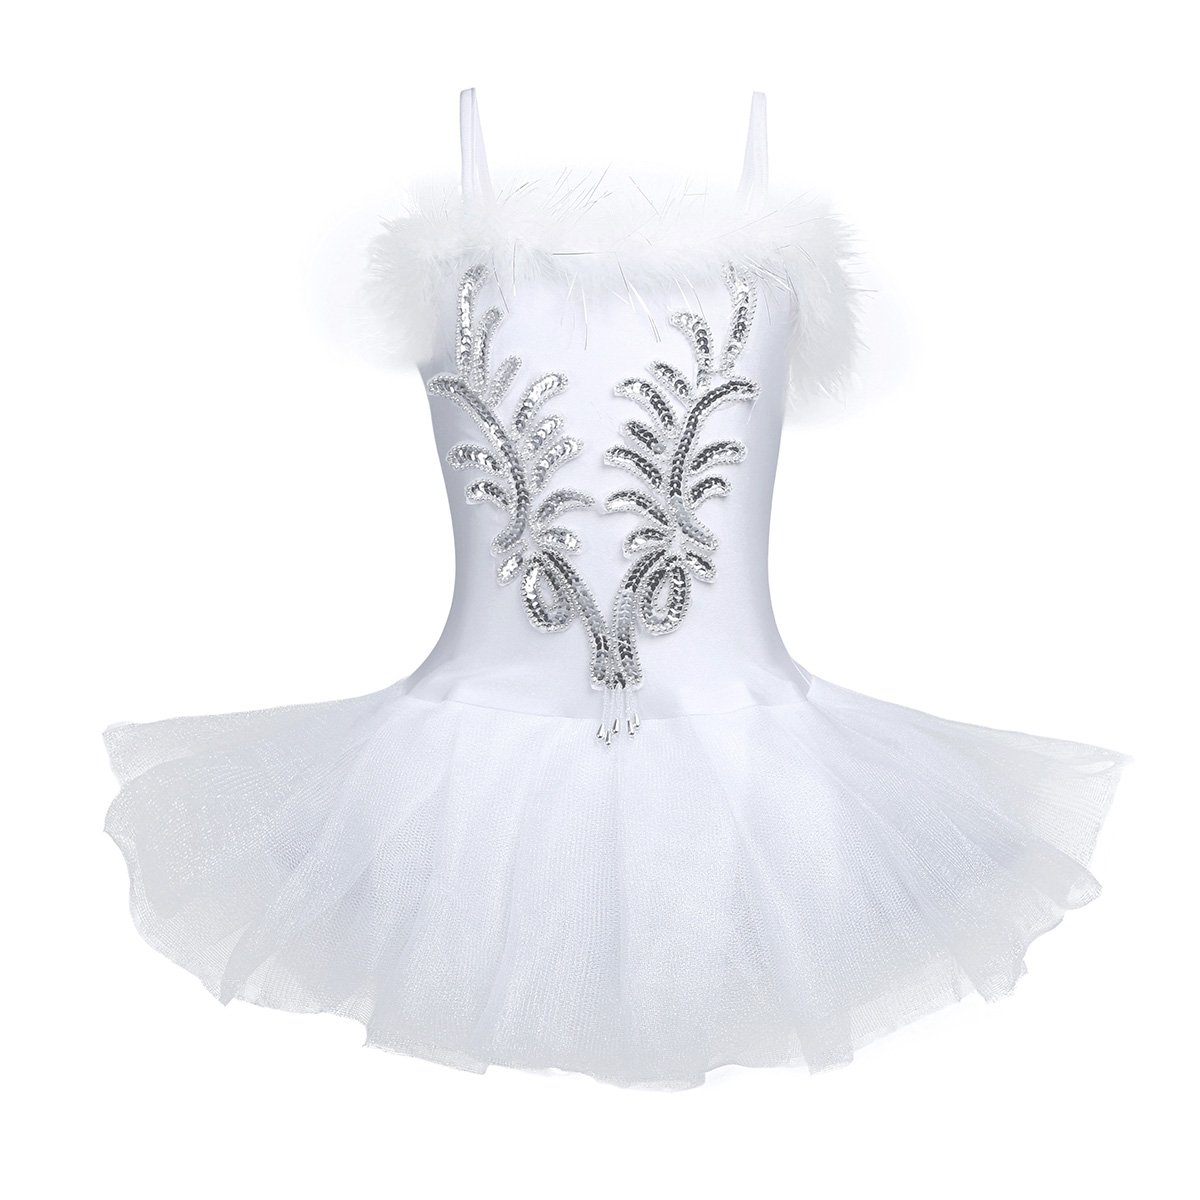 Amazon.com: CHICTRY Kids Girls Sequins Beads Flower Fairy Ballerina Dance Costume Ballet Tutu Dress with Long Gloves and Hair Clip Set: Clothing